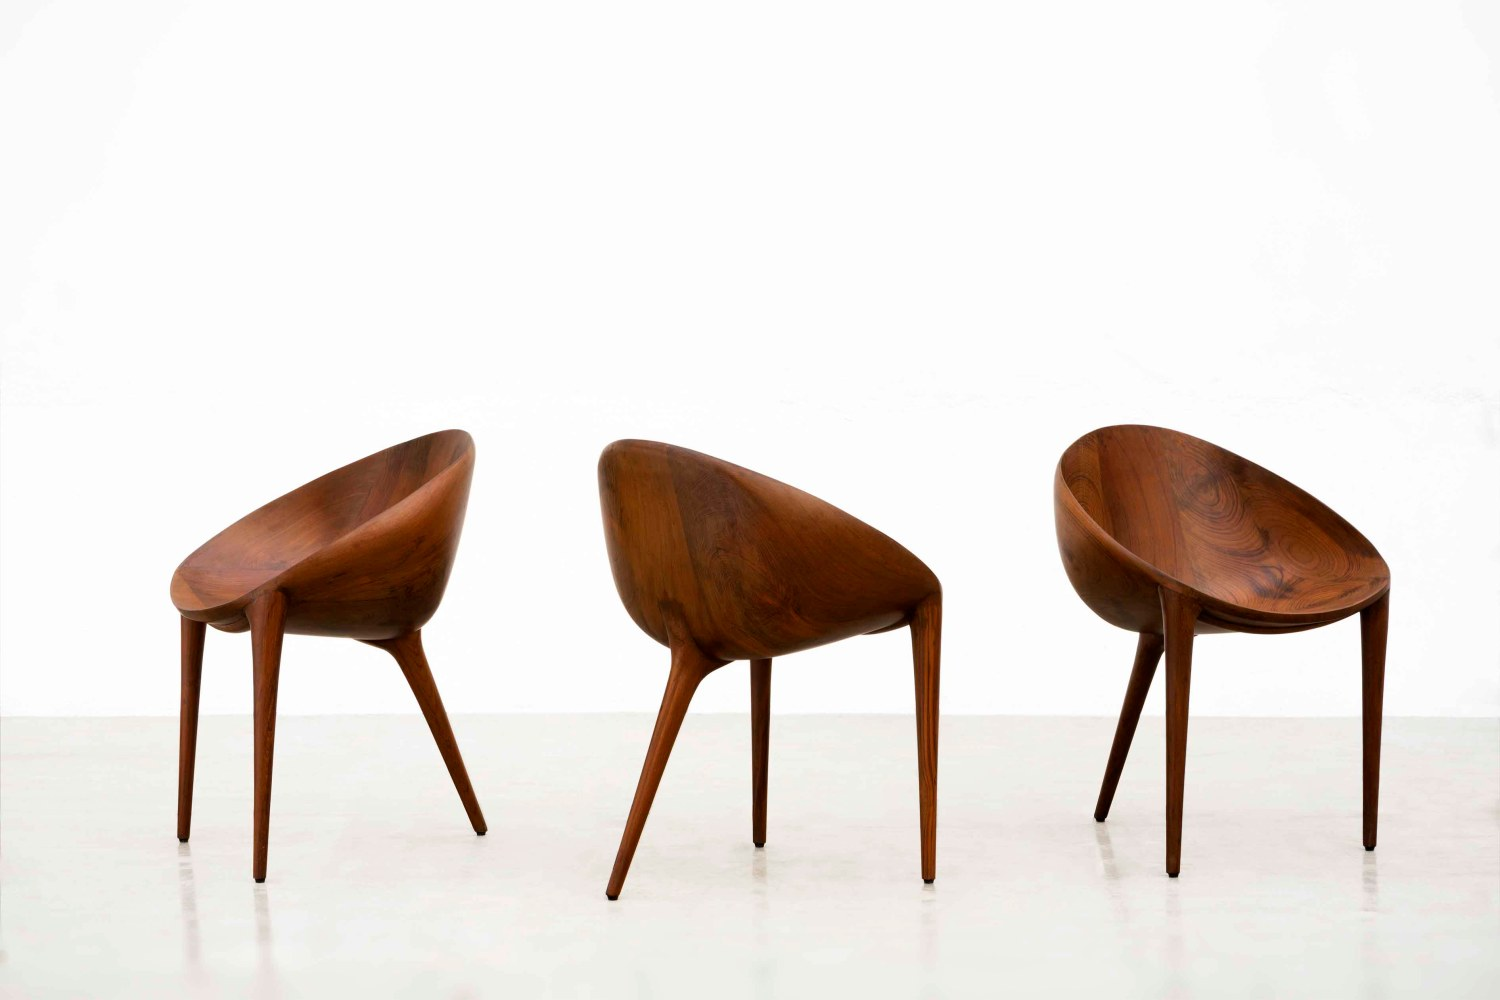 Egg Chairs, a tripod seater that's ergonomically apt